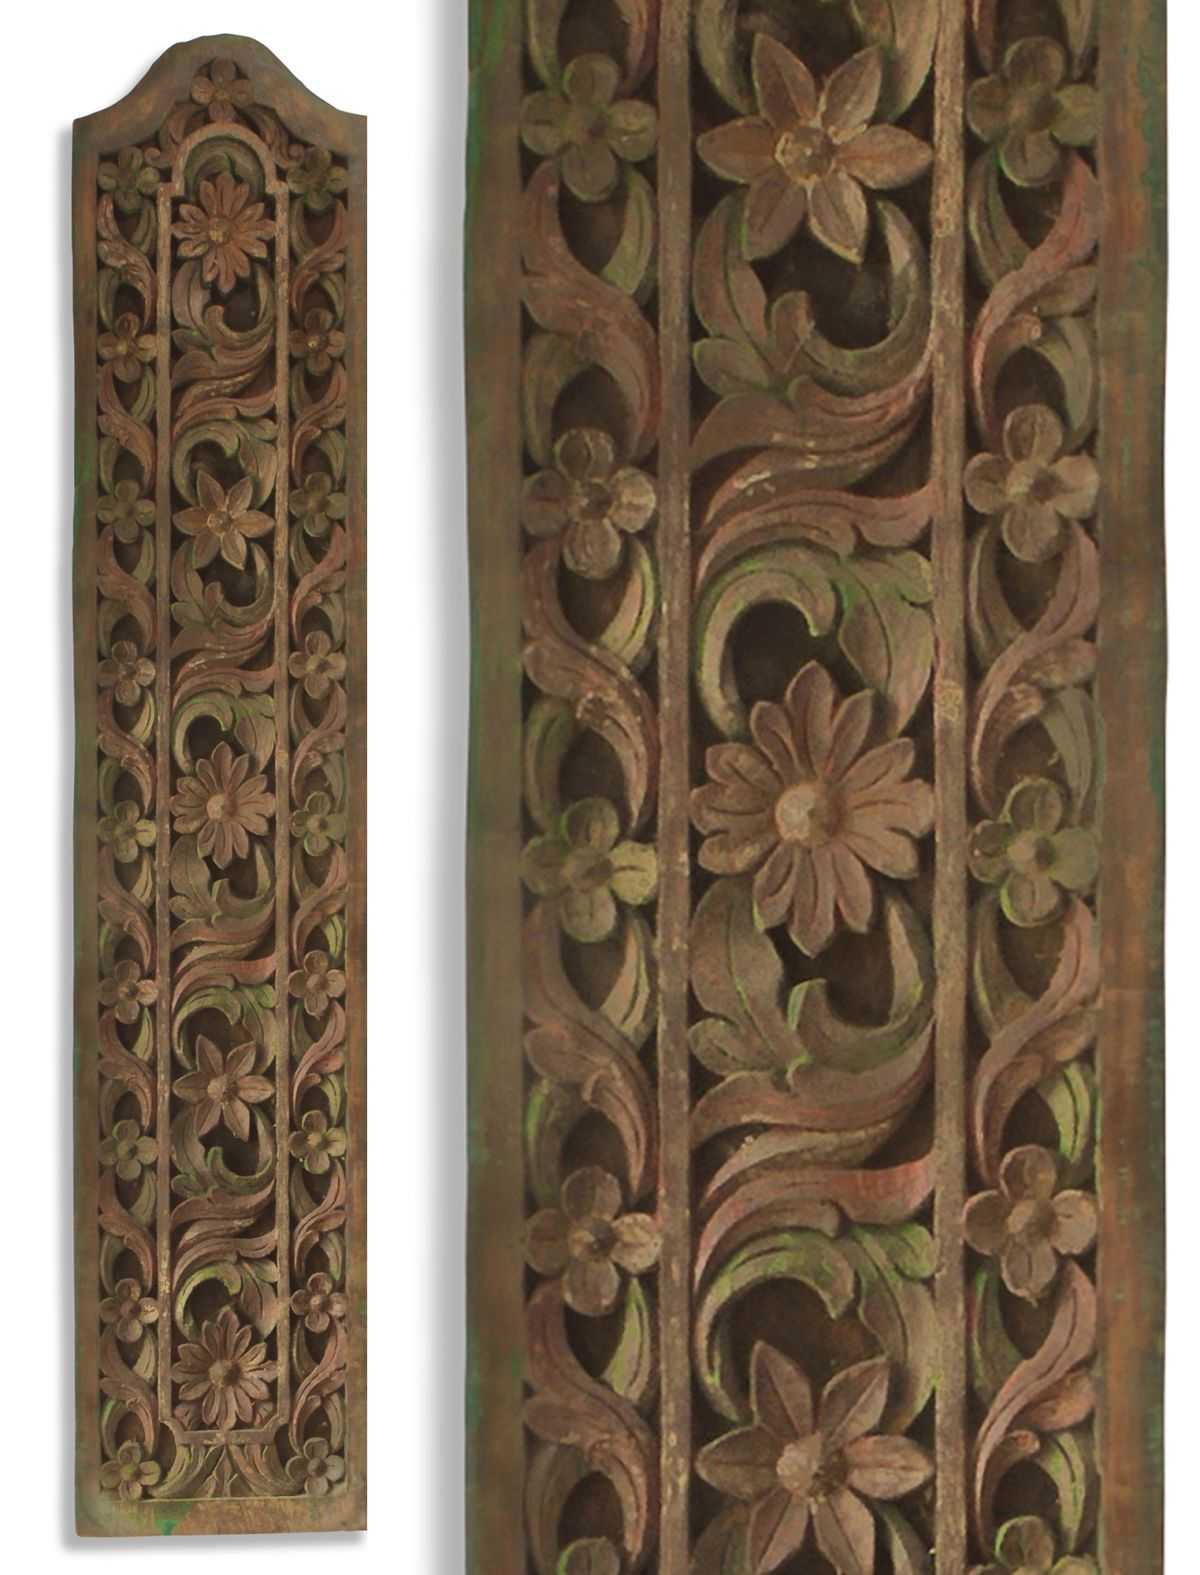 Matched Pair of Vintage Javanese Hand-Carved Frangipani Decorative Wall Panels